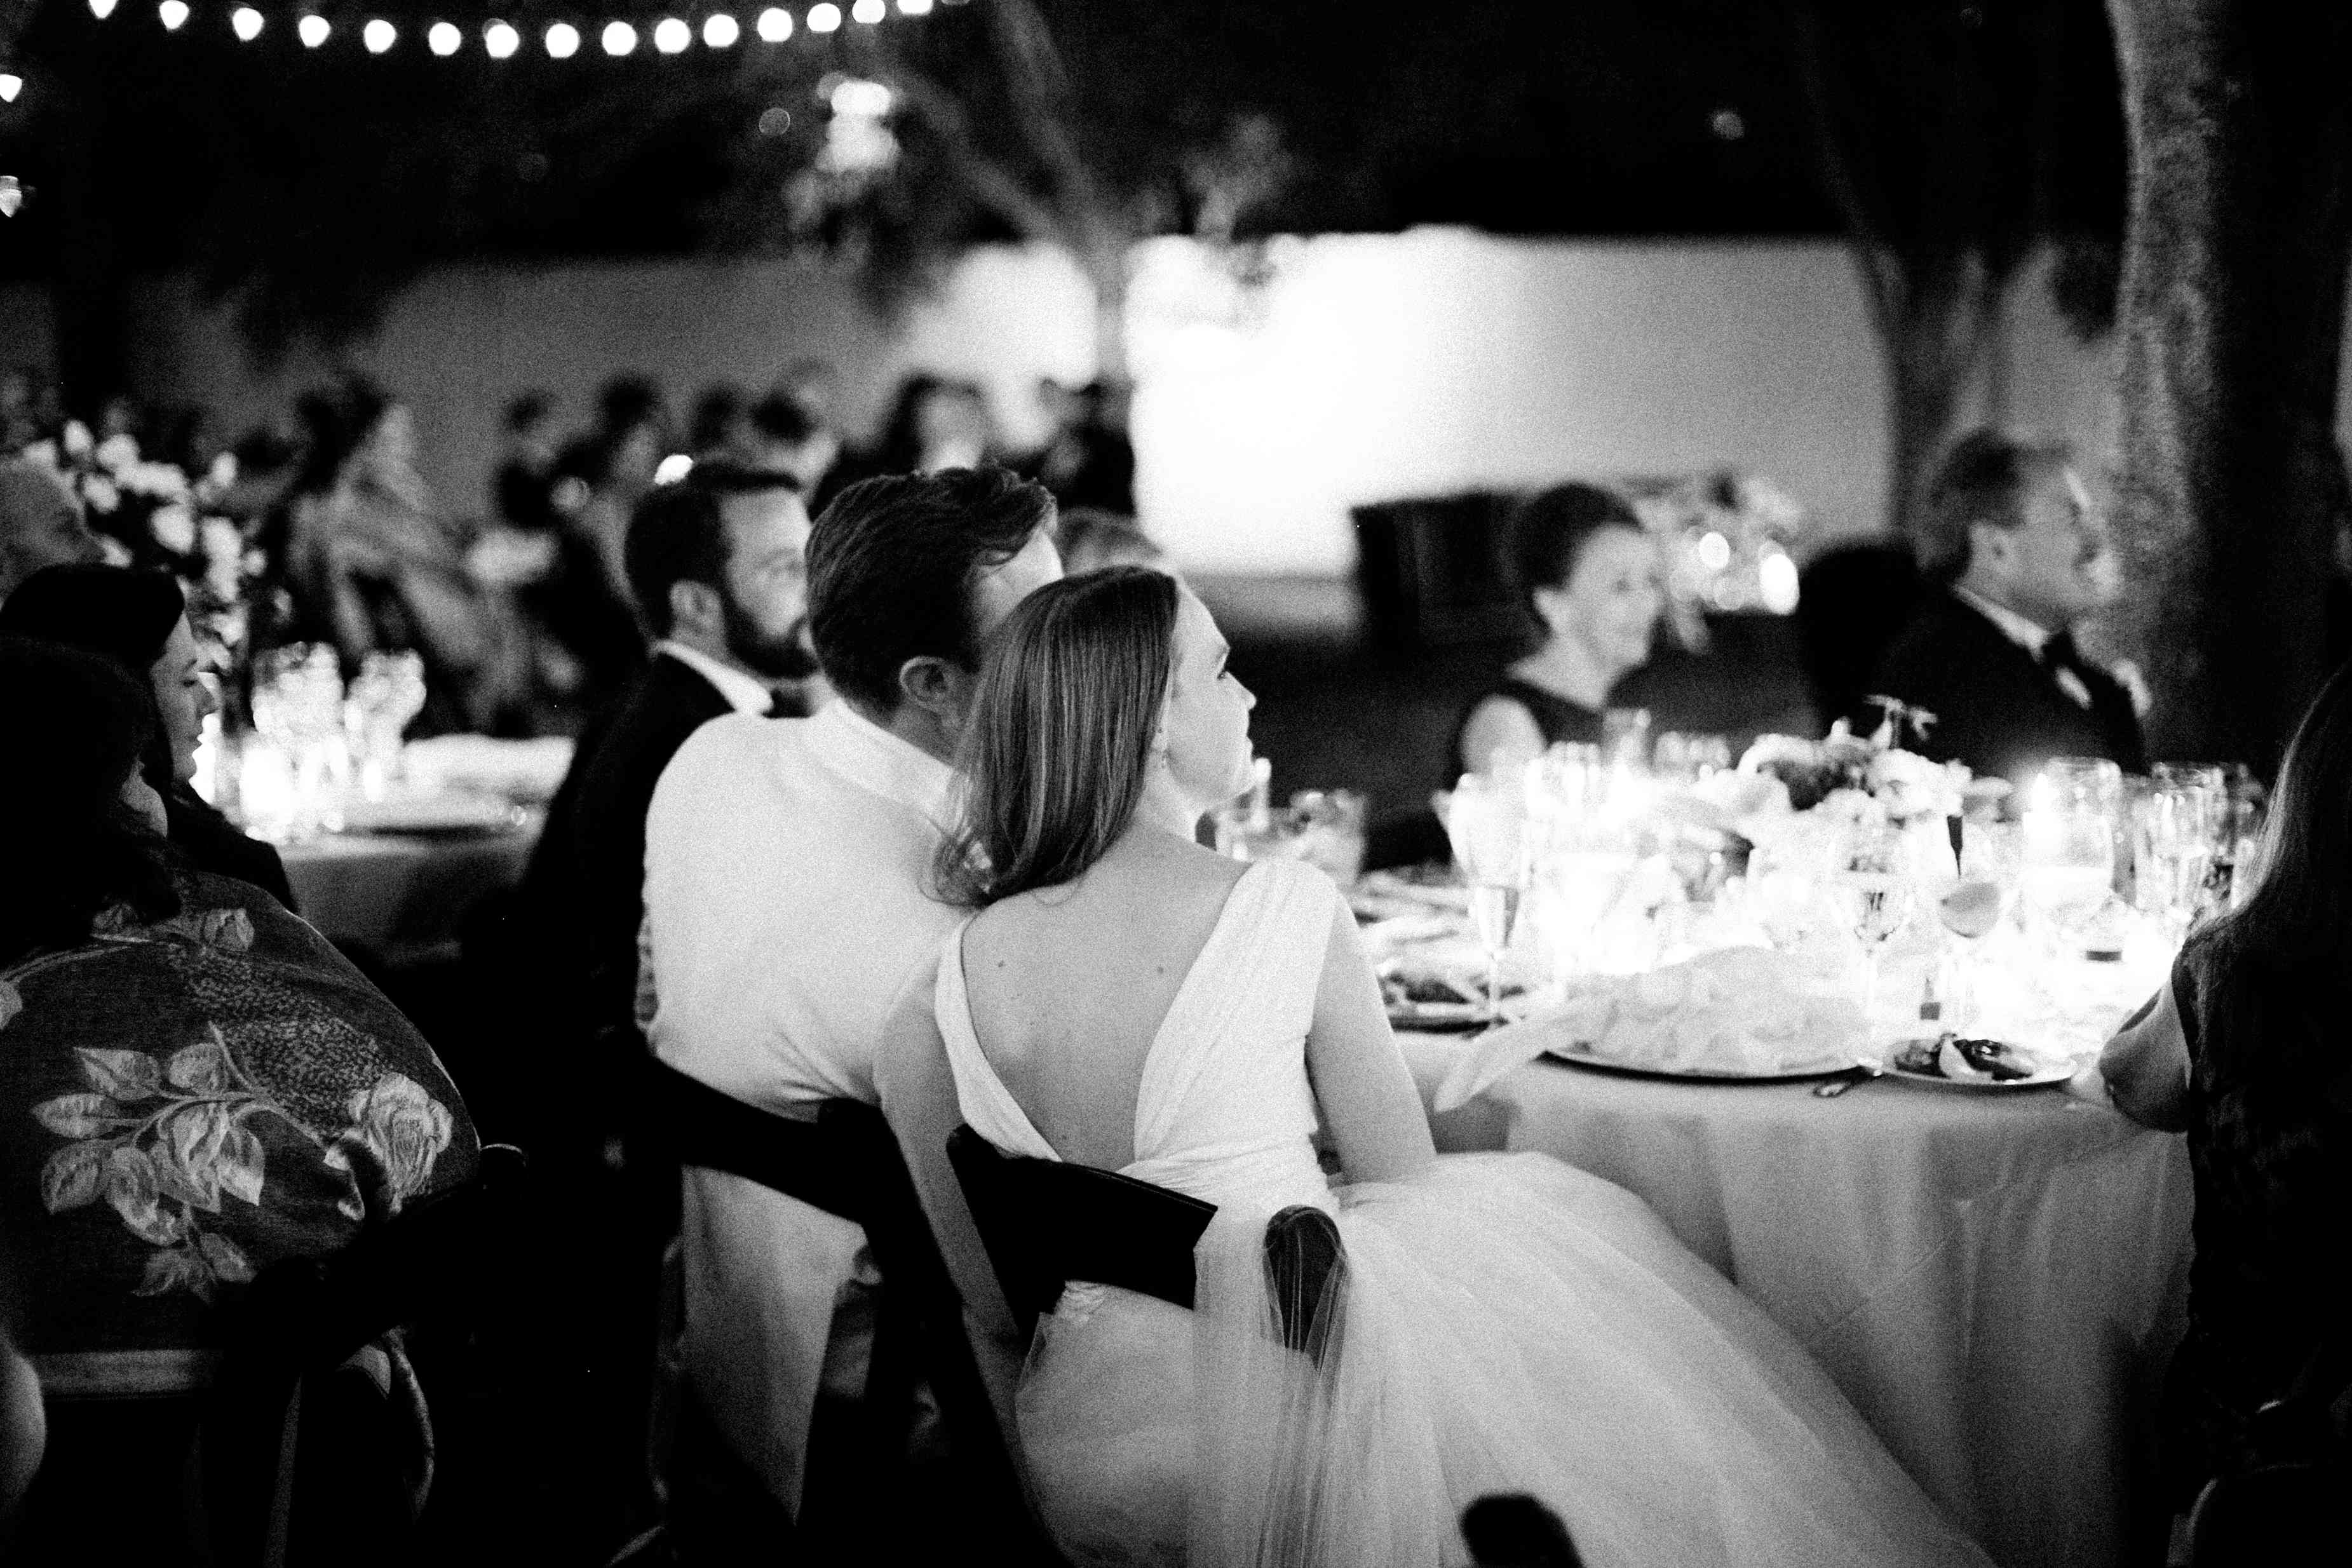 Bride and groom during reception dinner